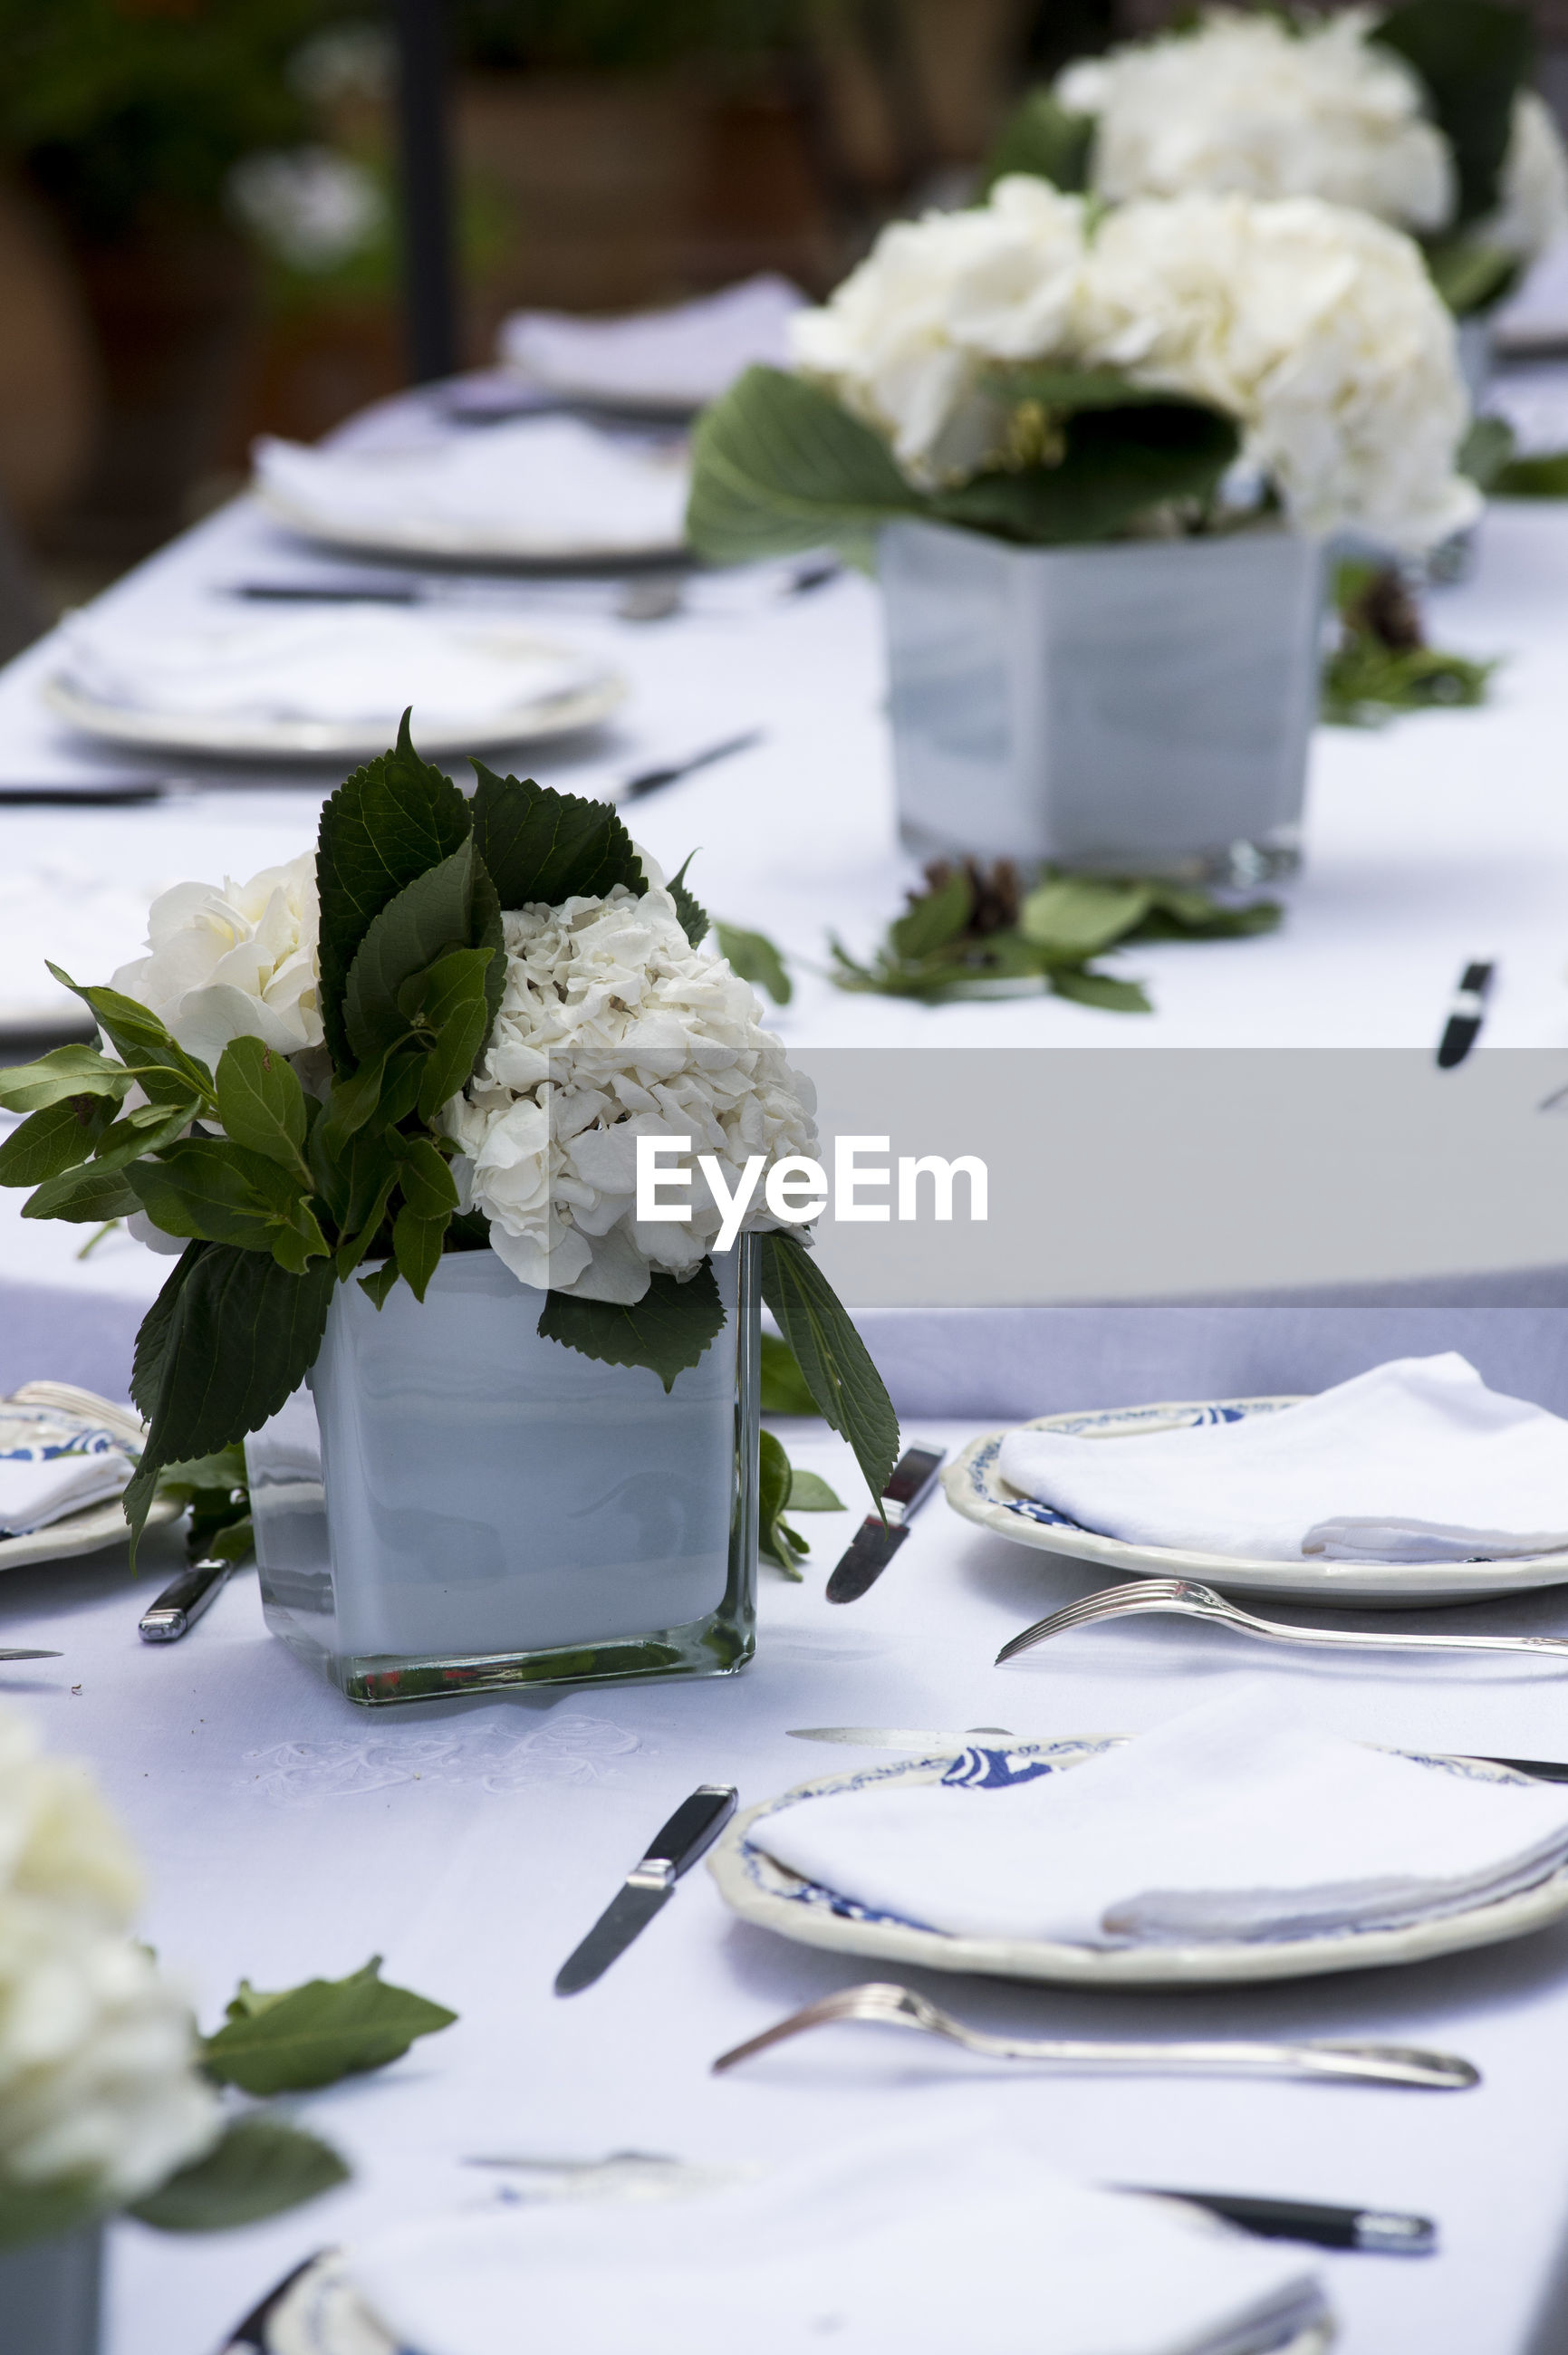 WHITE ROSE ON TABLE IN PLATE